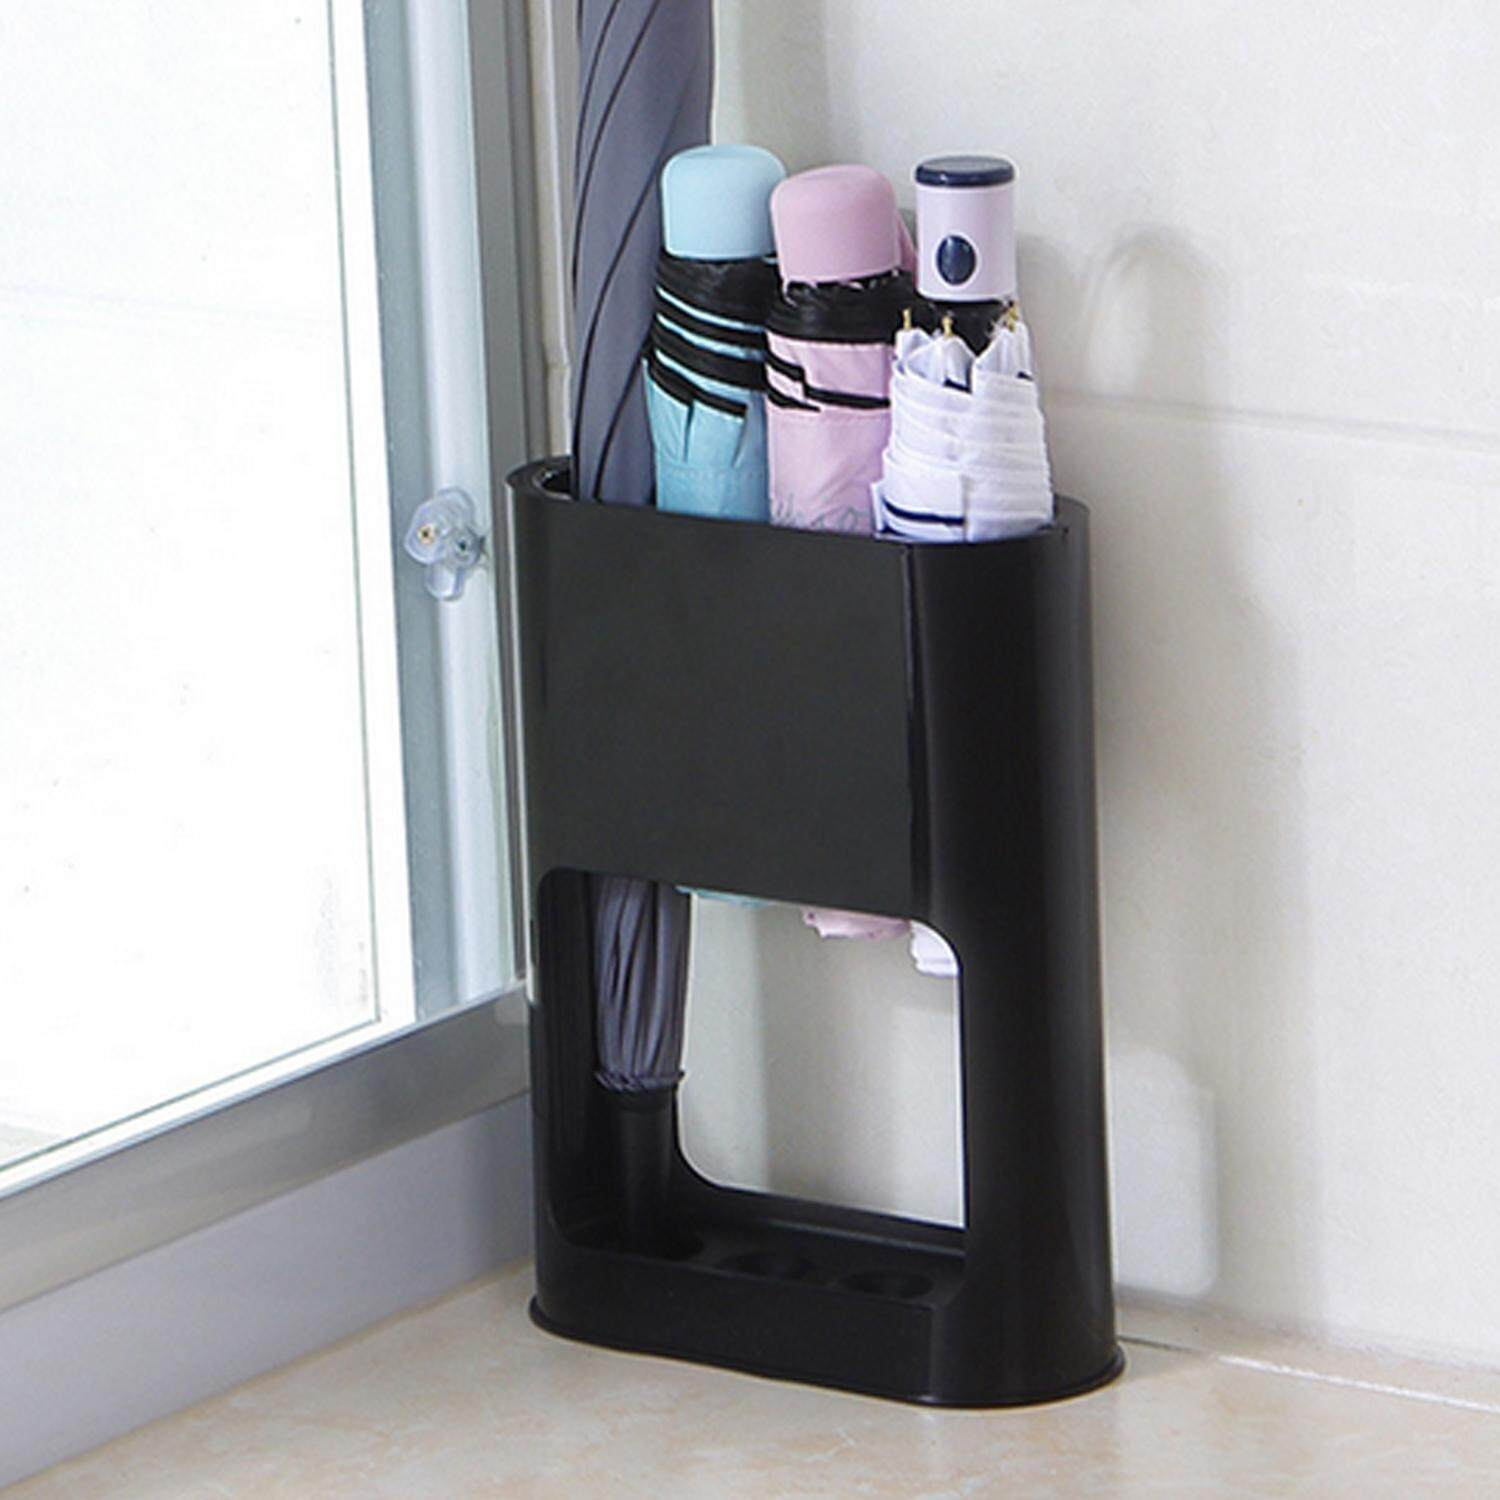 Universal 4-Slot Plastic Umbrella Stand Storage Holder Support Racks Shelve Organizer with Removable Drip Tray for Hallway Outdoor Indoor - intl